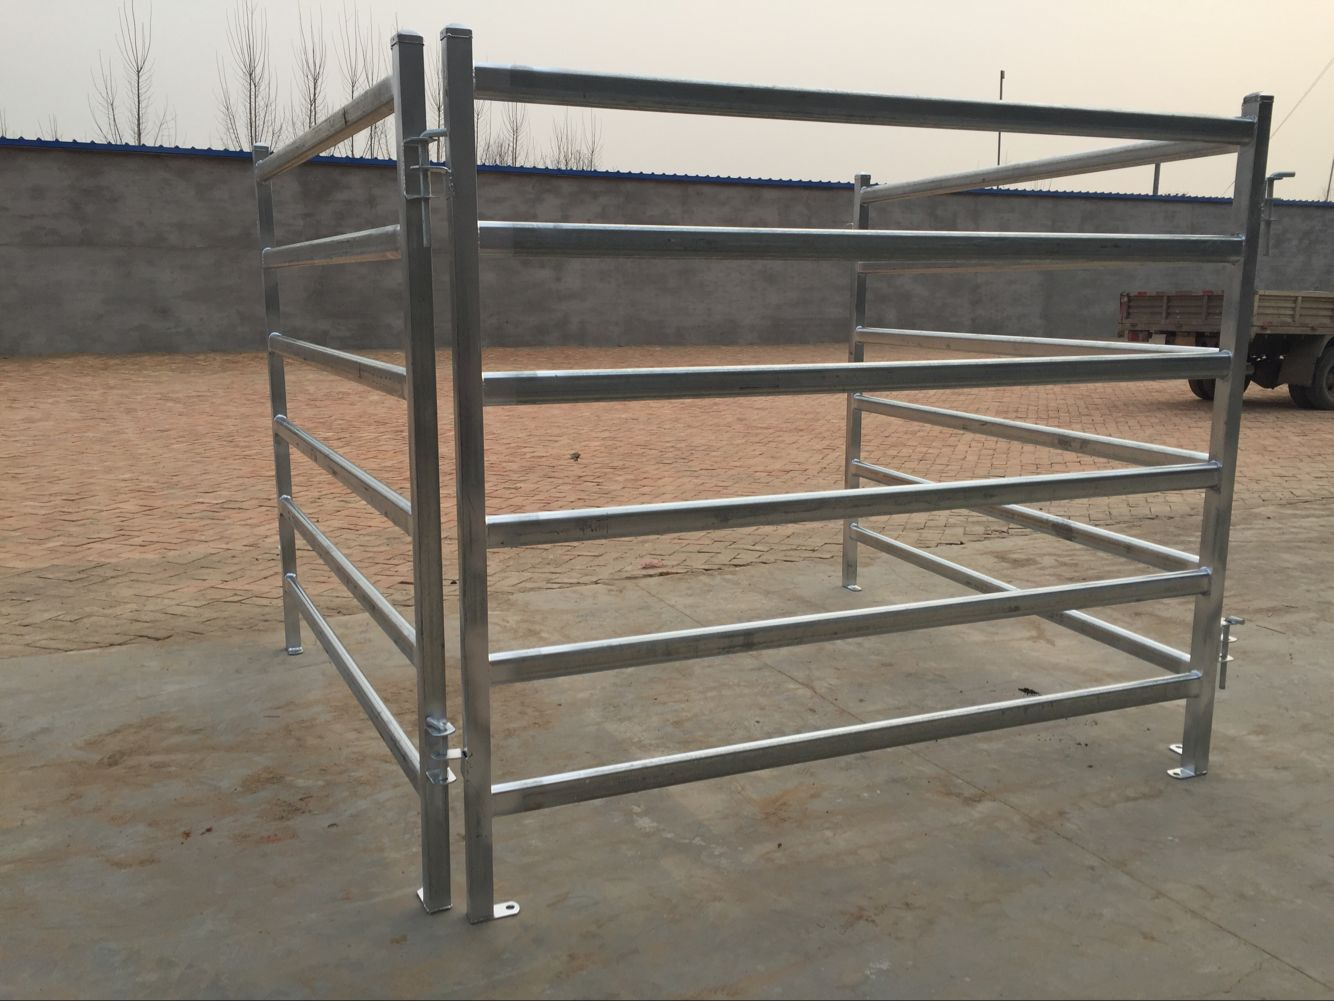 6 bar oval galvanized cattle fence